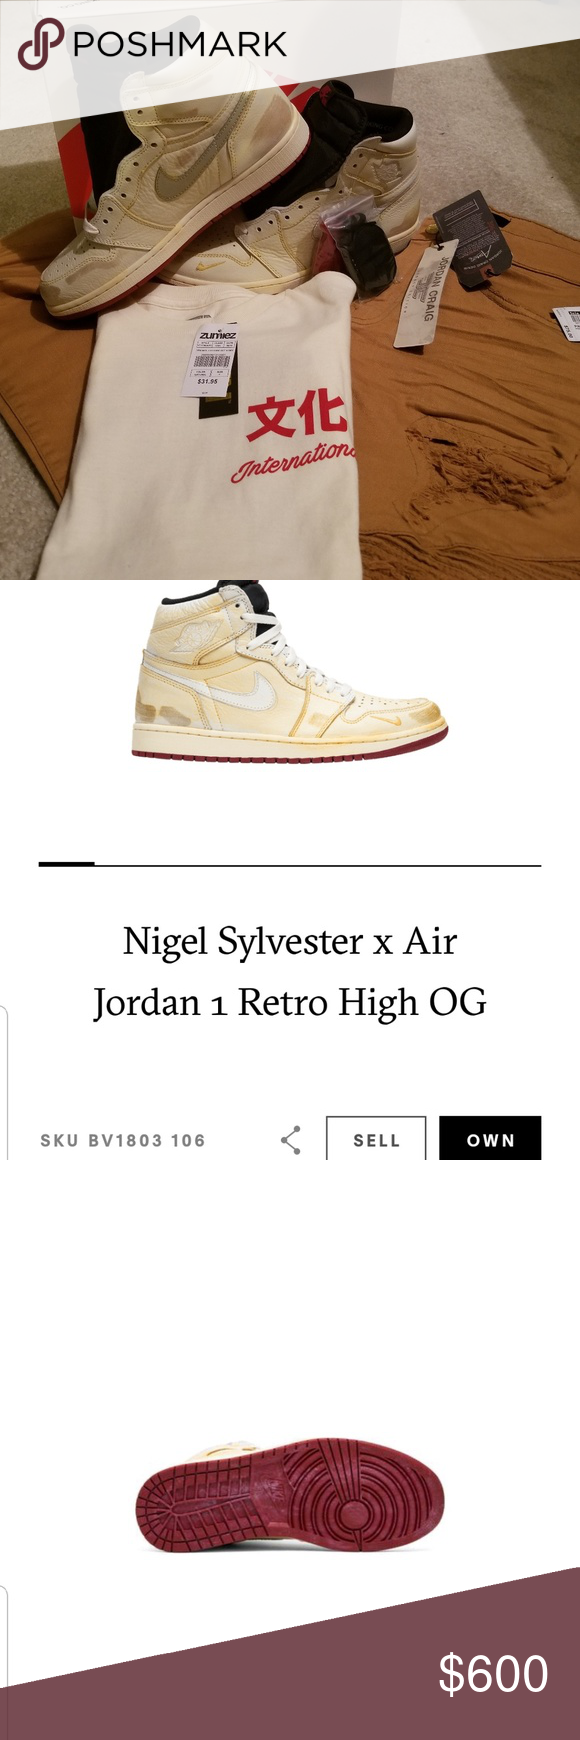 separation shoes 562fa 11fb8 Nigel Sylvester x Jordan s Retro 1 Size 11 and size 9US perfect condition  in a Box never seen feet nor ground 9  650 11575 Nike Shoes Sneakers